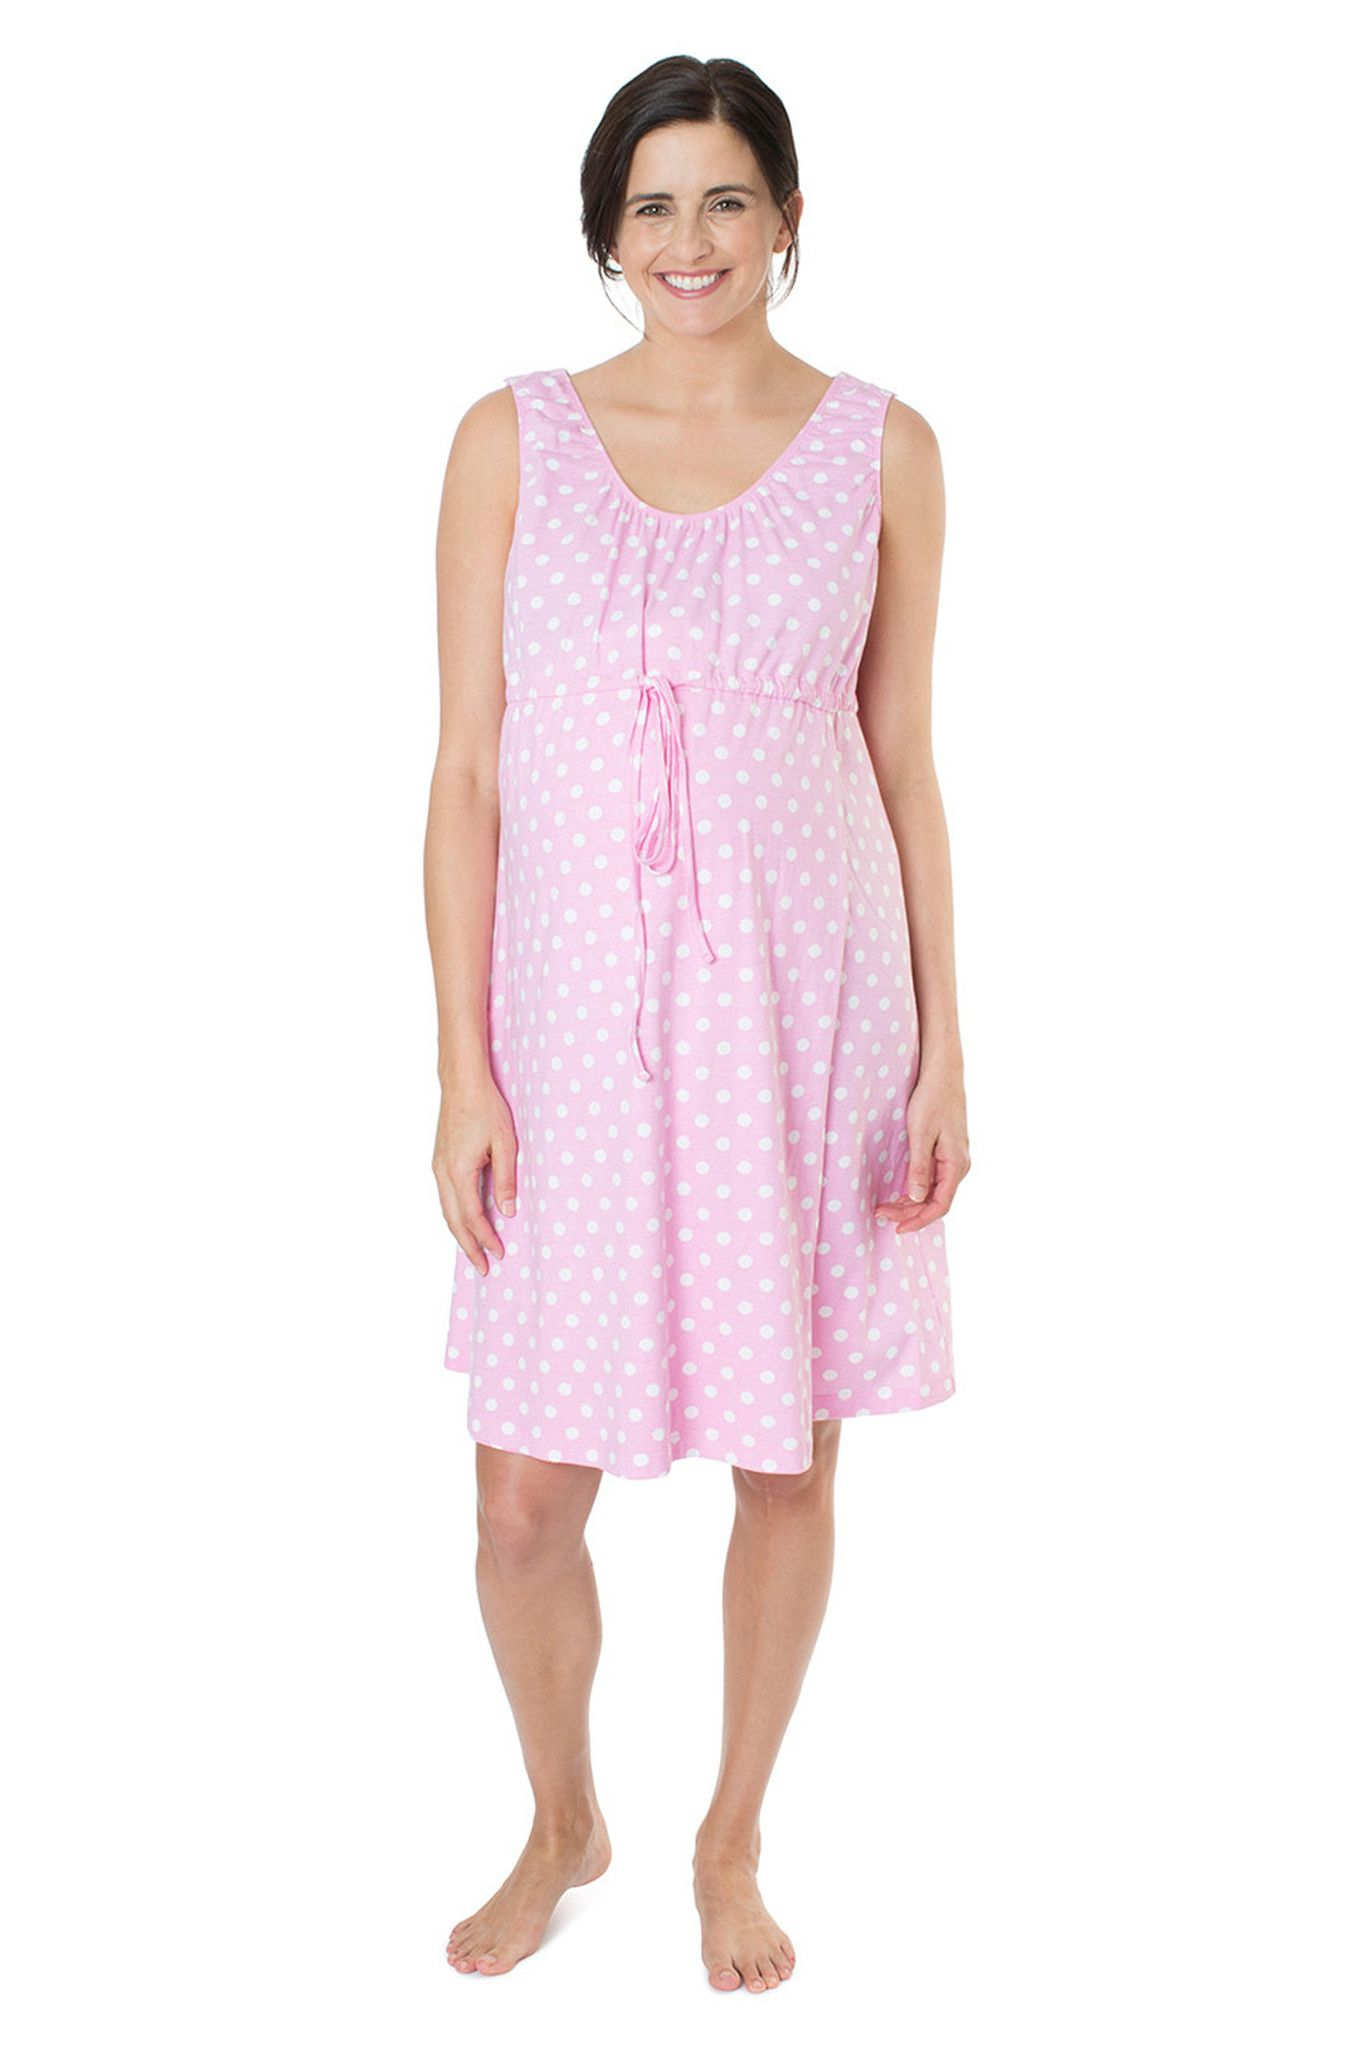 Molly 3 in 1 Labor / Delivery / Nursing Gown | Nursing gown, Labour ...